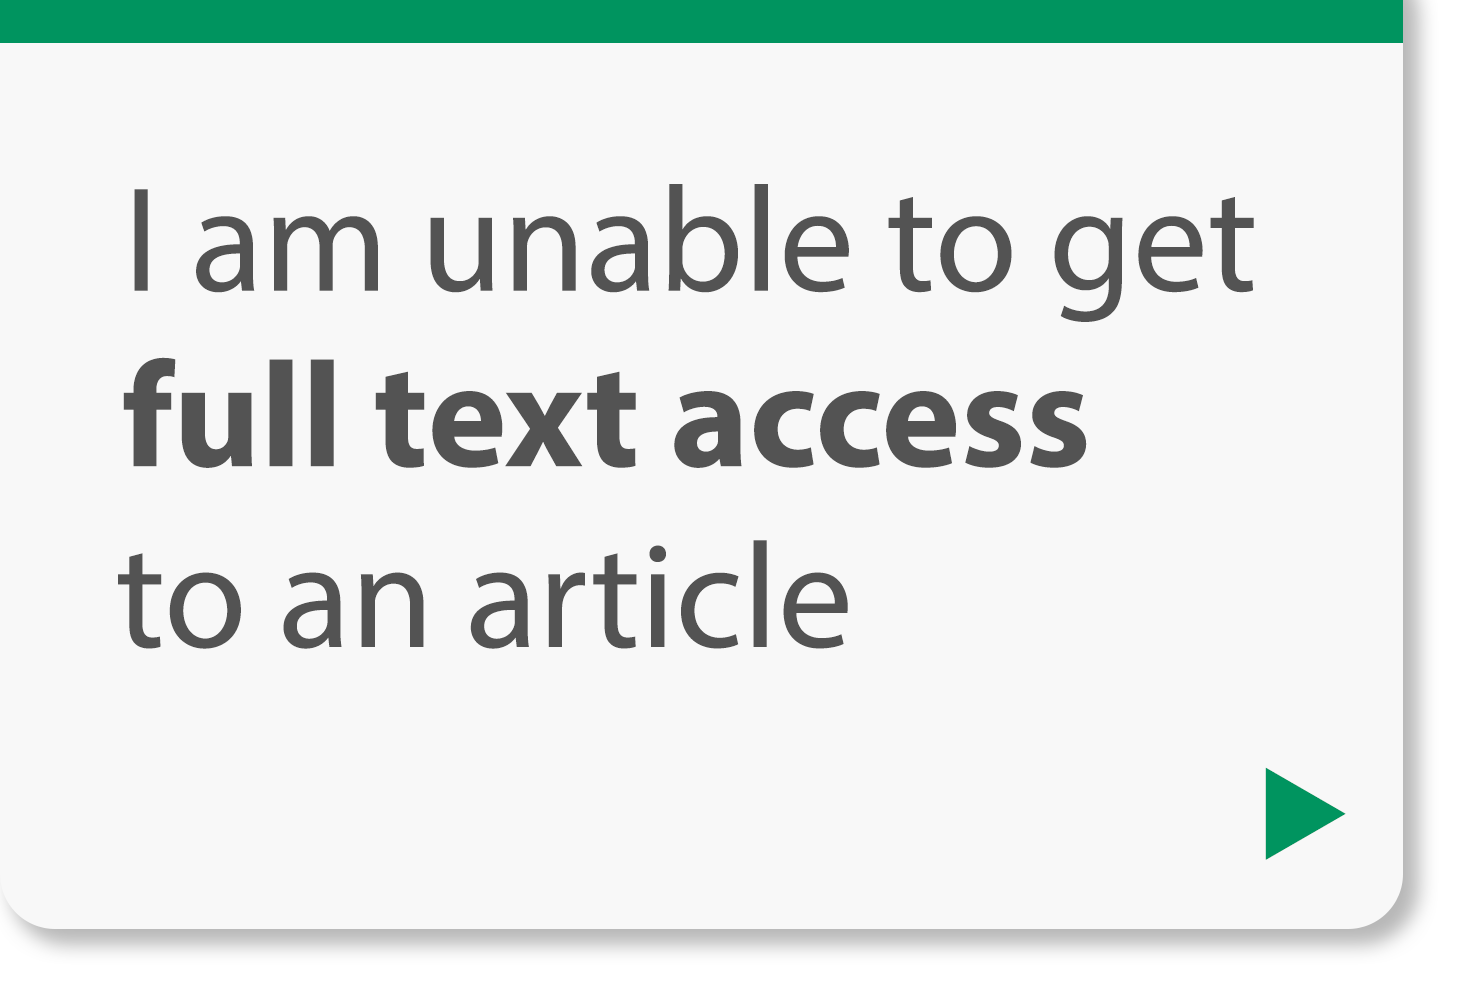 I am unable to get full text access to an article